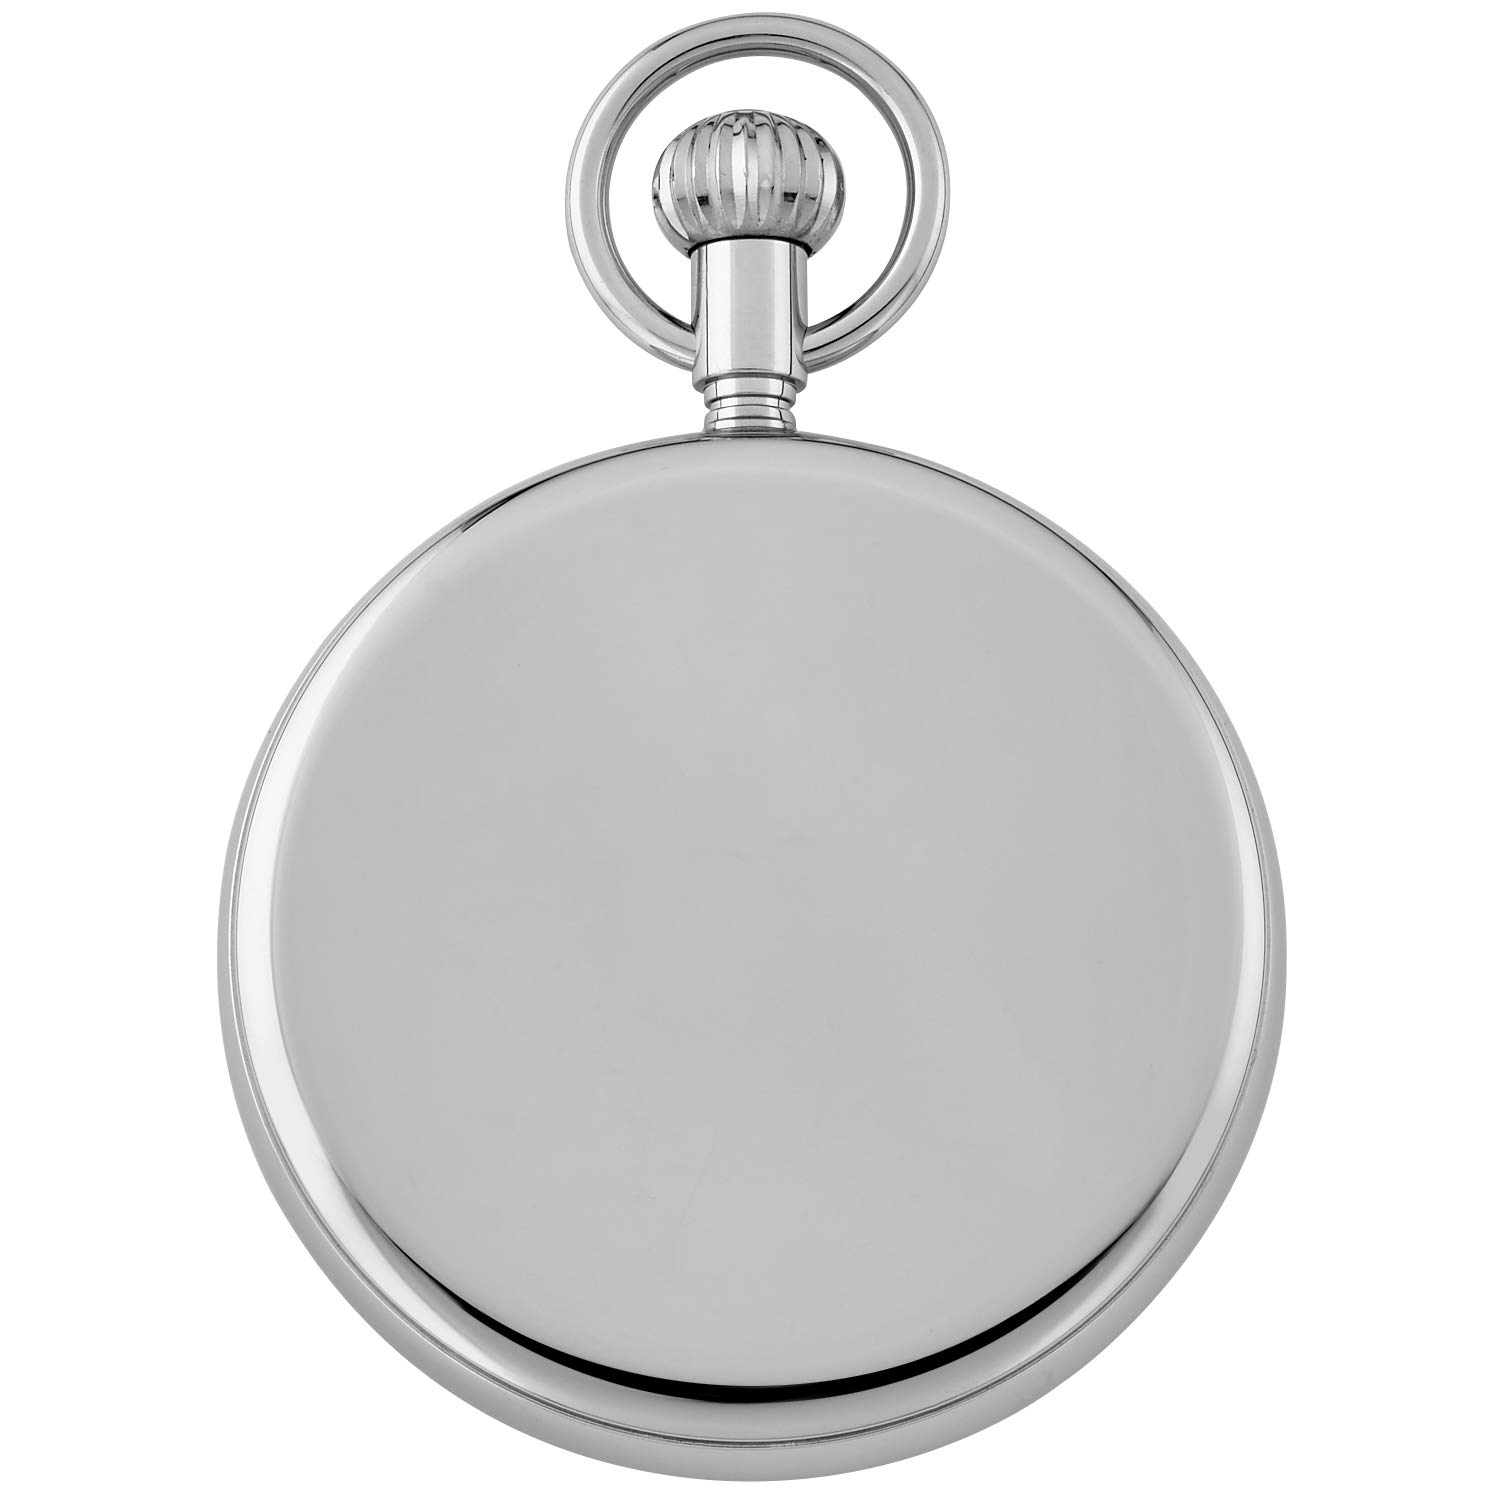 Gotham Men's Stainless Steel Mechanical Hand Wind Railroad Pocket Watch # GWC14104s by Gotham (Image #4)